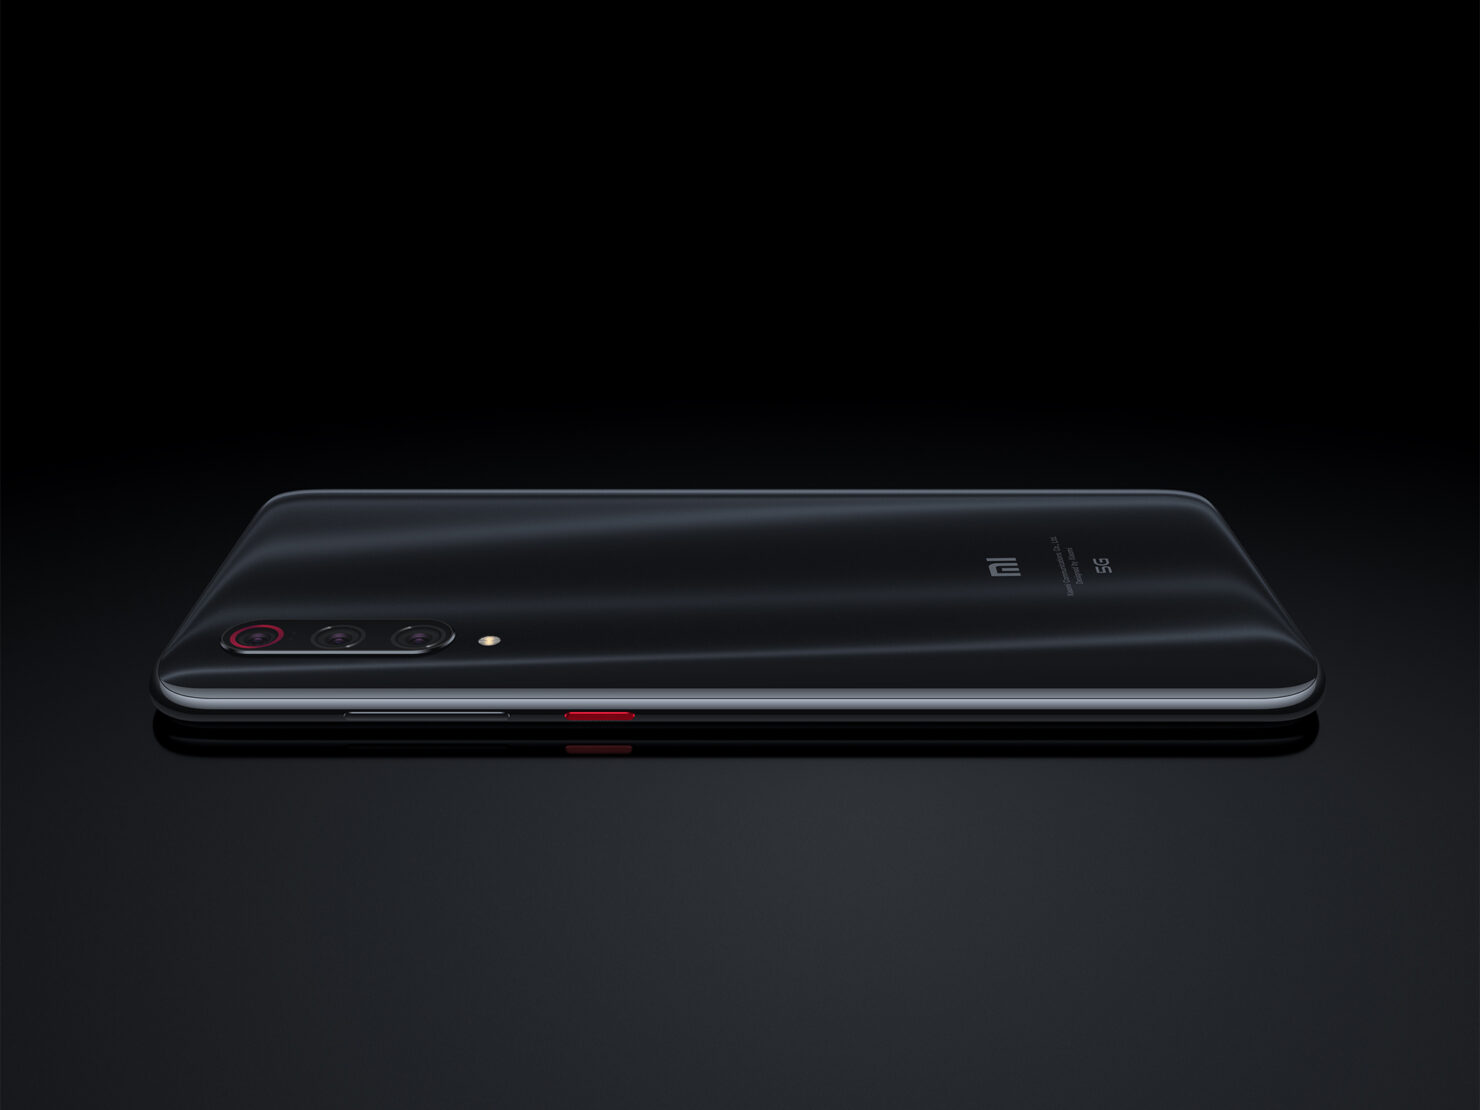 Xiaomi's Mi 9 Pro 5G offers an affordable gateway to flagship Android specs and 5G connectivity